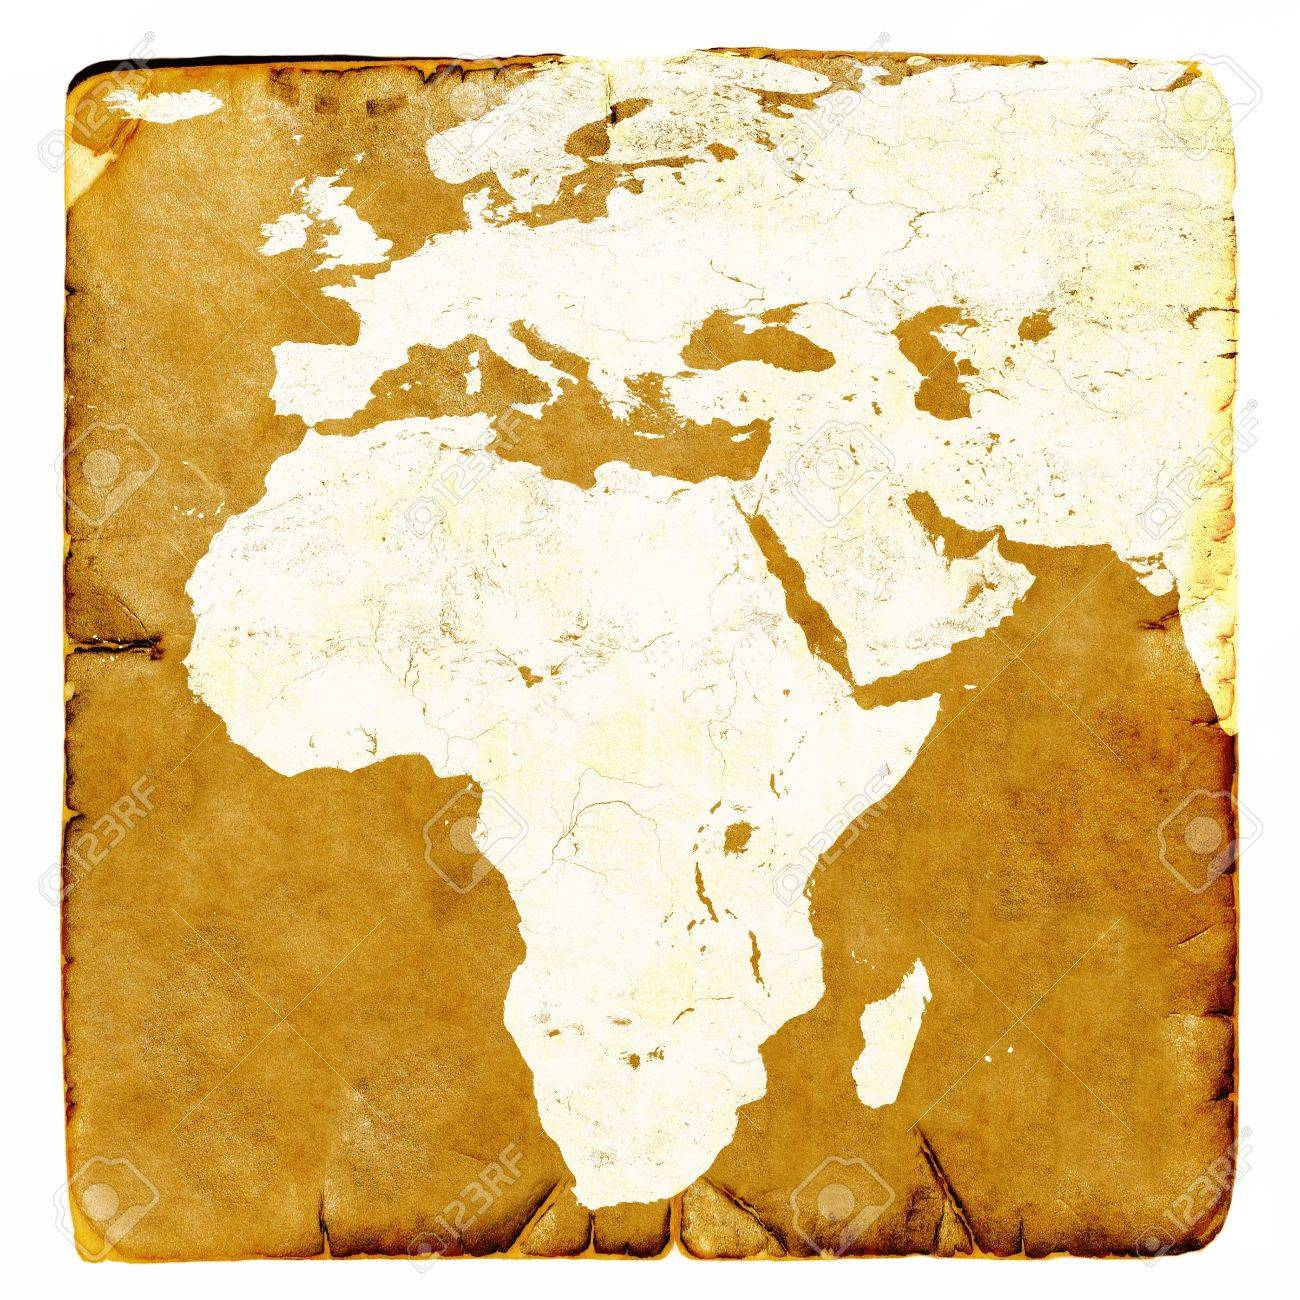 Map Of Africa And Europe Blank In Old Style. Brown Graphics In